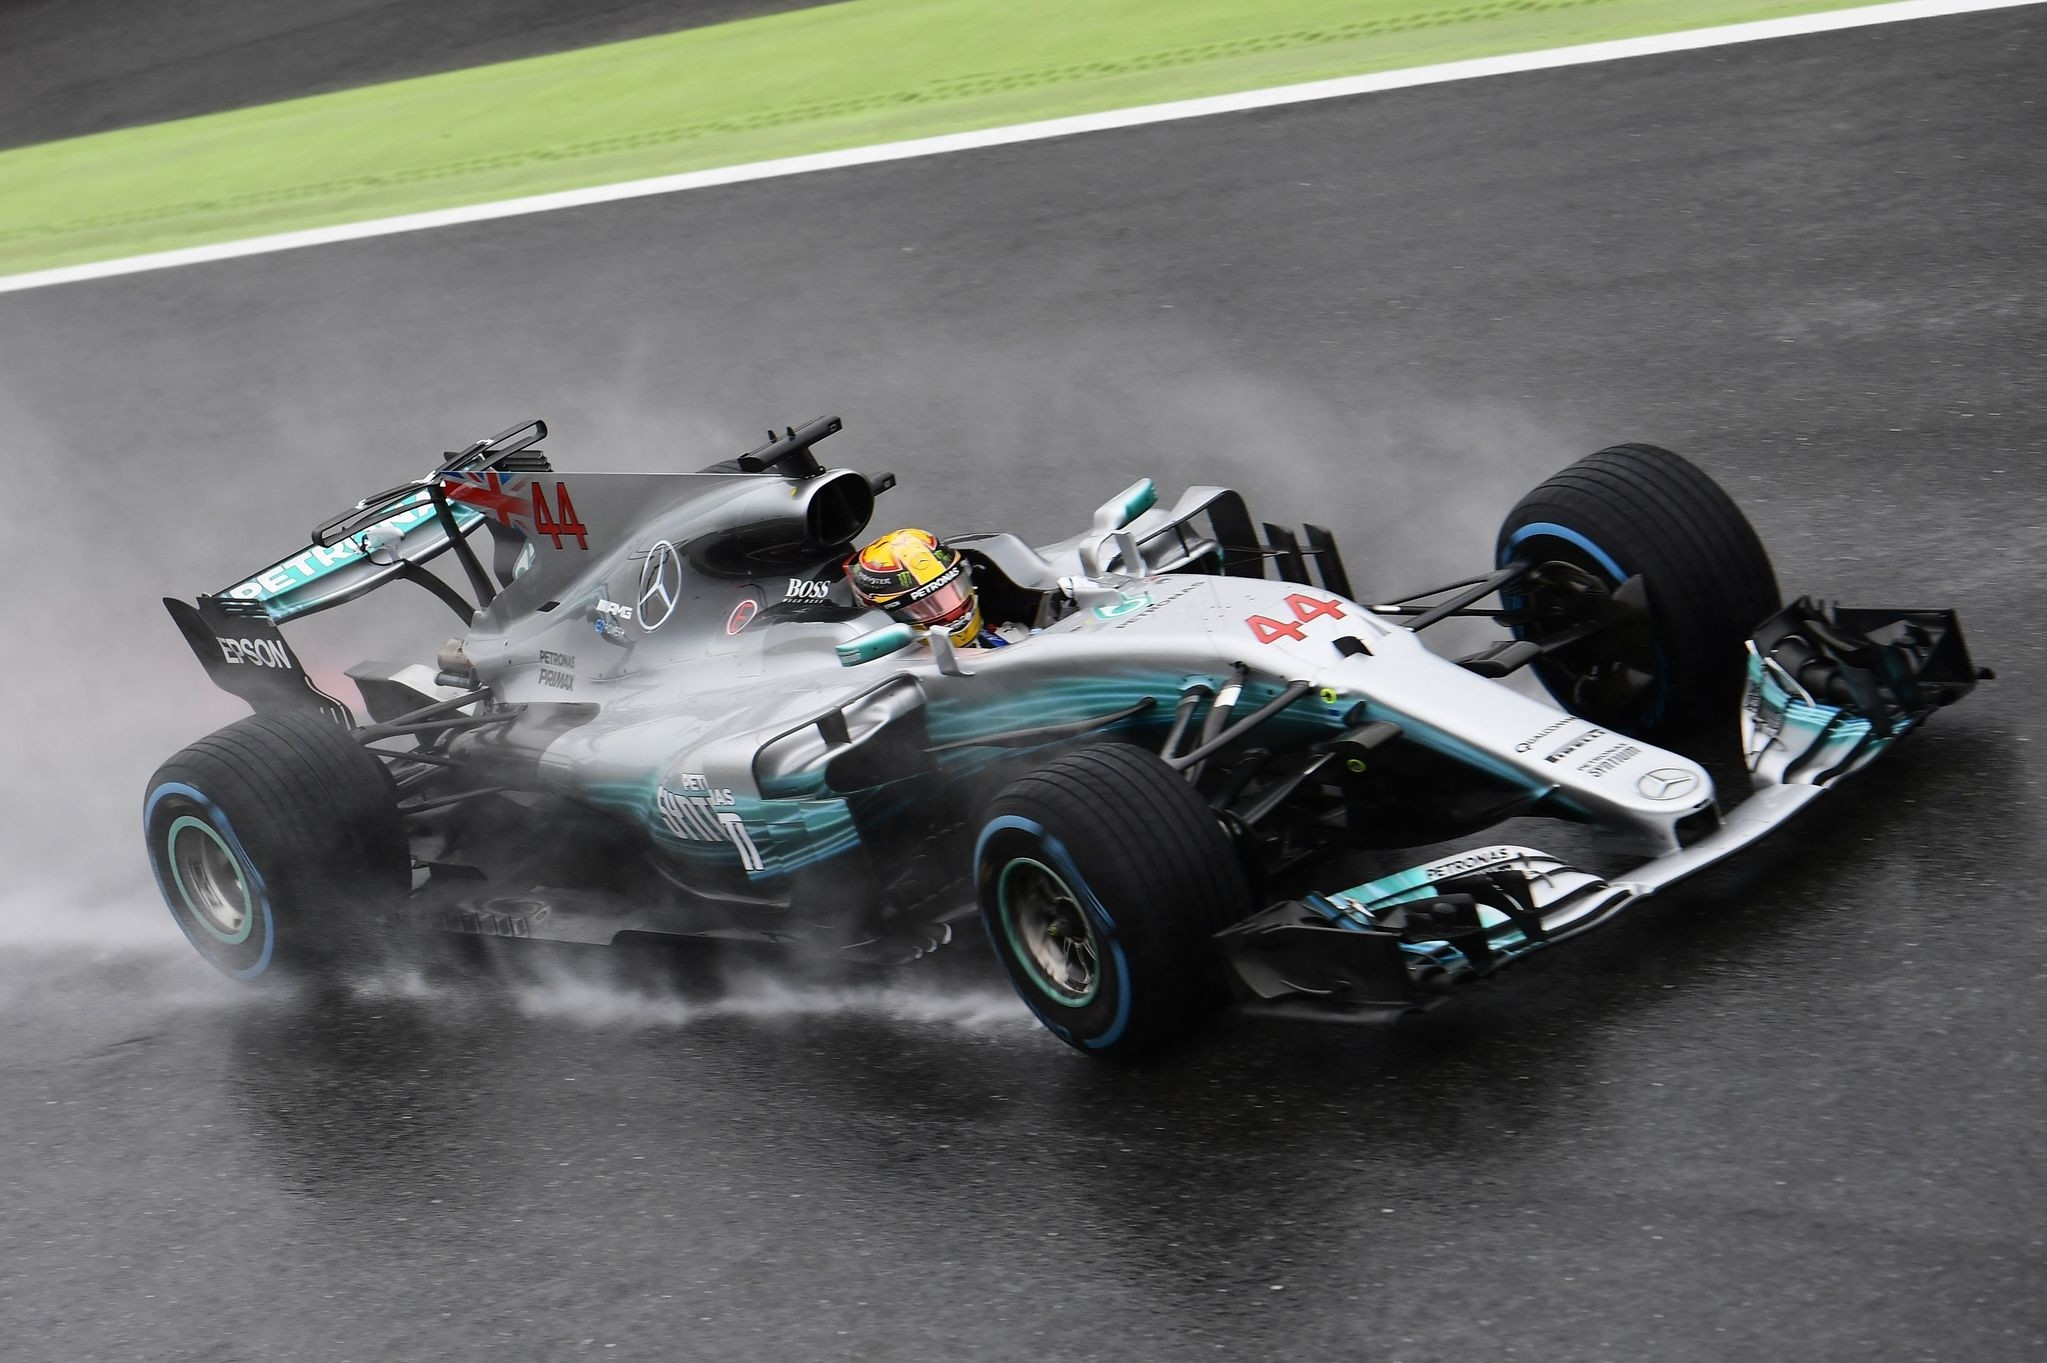 Mercedes' British driver Lewis Hamilton drives during the qualifying session at the Autodromo Nazionale circuit in Monza on September 2, 2017 ahead of the Italian Formula 1 GP. (AFP Photo)